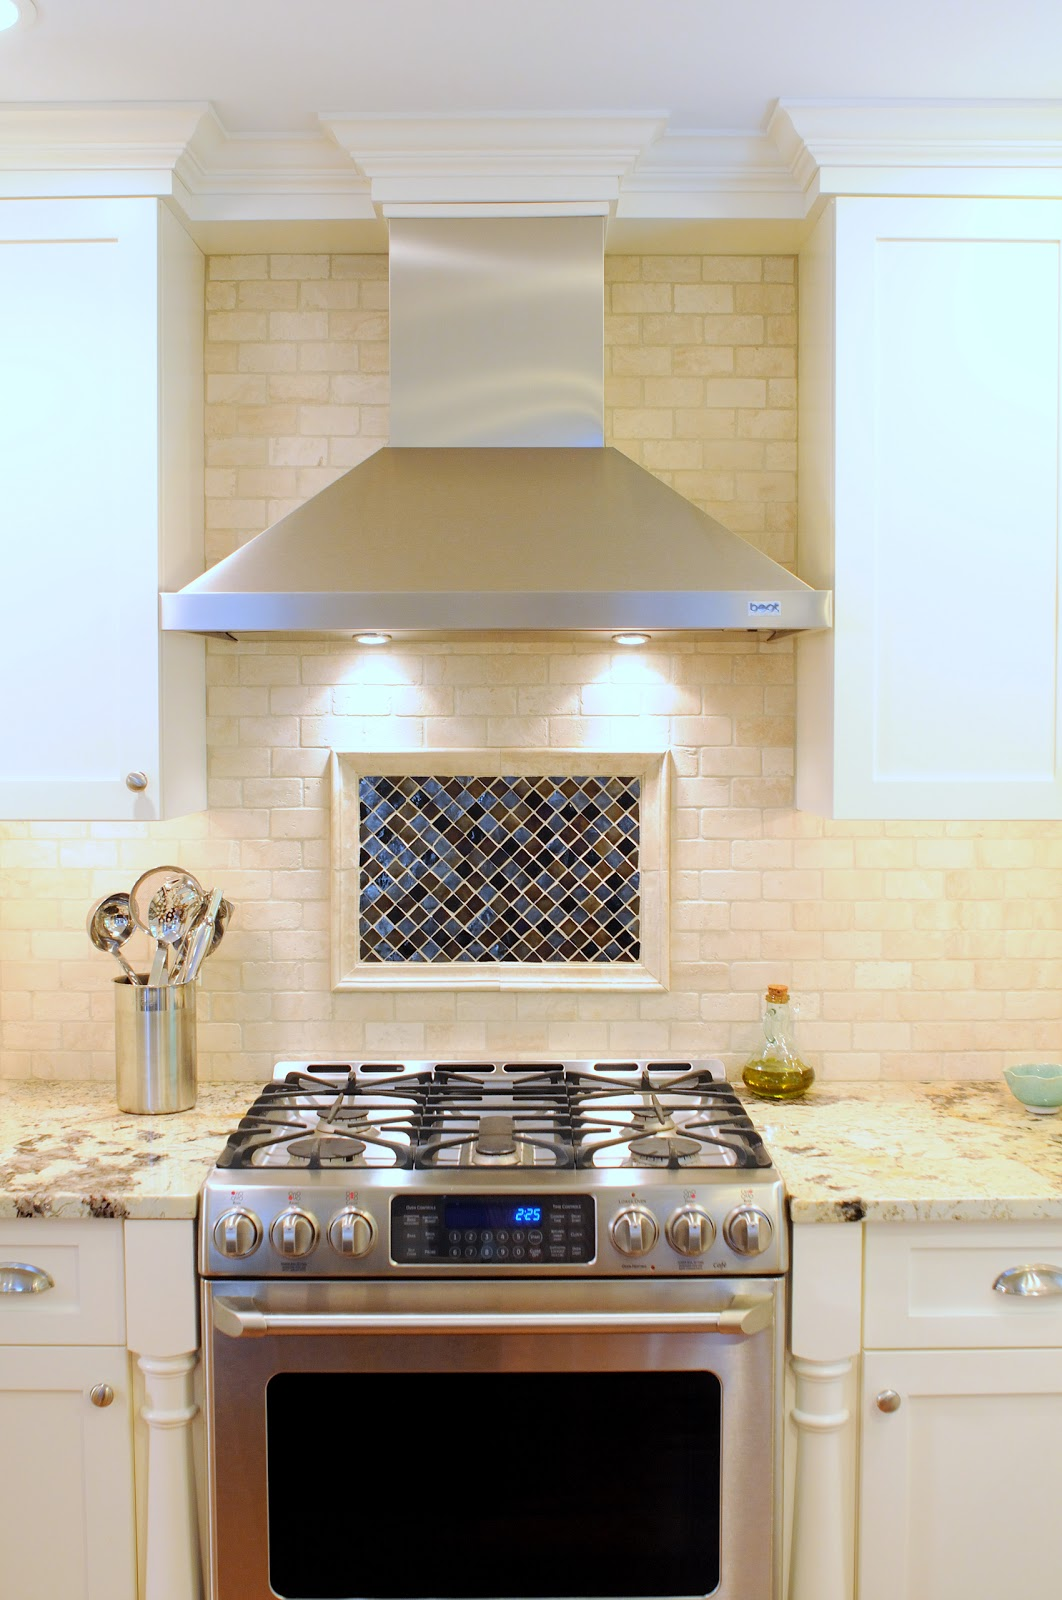 Images Over Kitchen Range with Hood